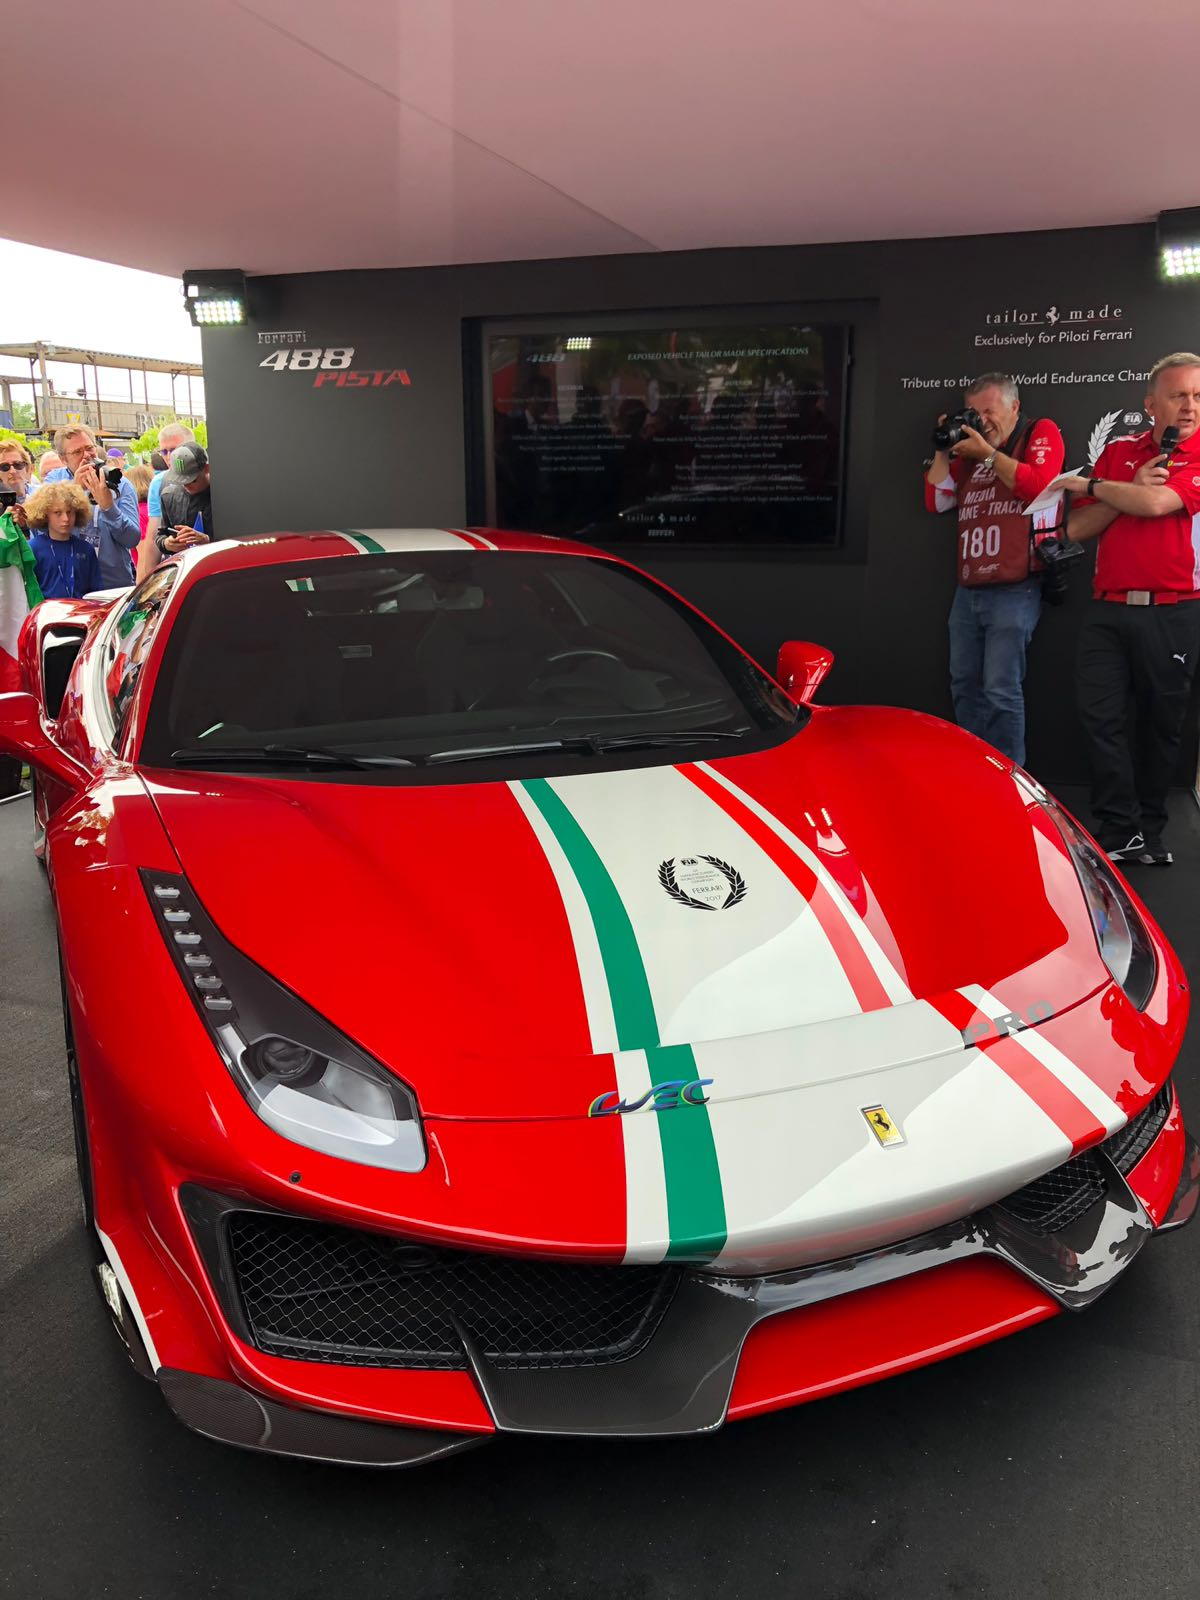 Race Cars For Sale >> The brand new Ferrari 488 Pista Pilota | FCHGT